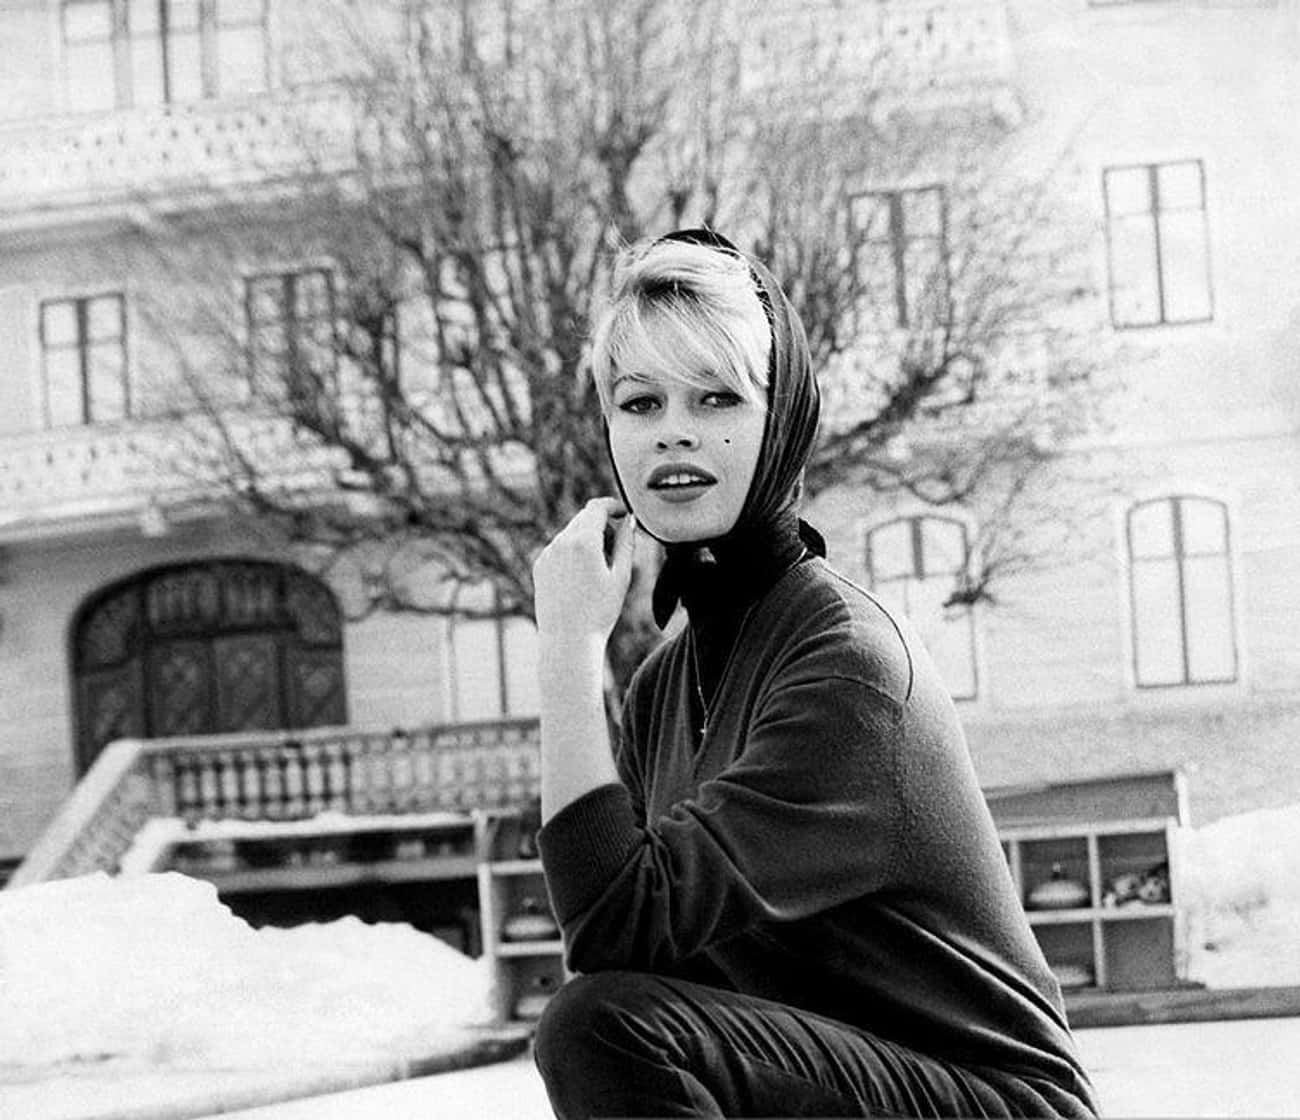 Brigitte Bardot is listed (or ranked) 3 on the list 43 Photos Of Older Celebrity Women In Their Prime